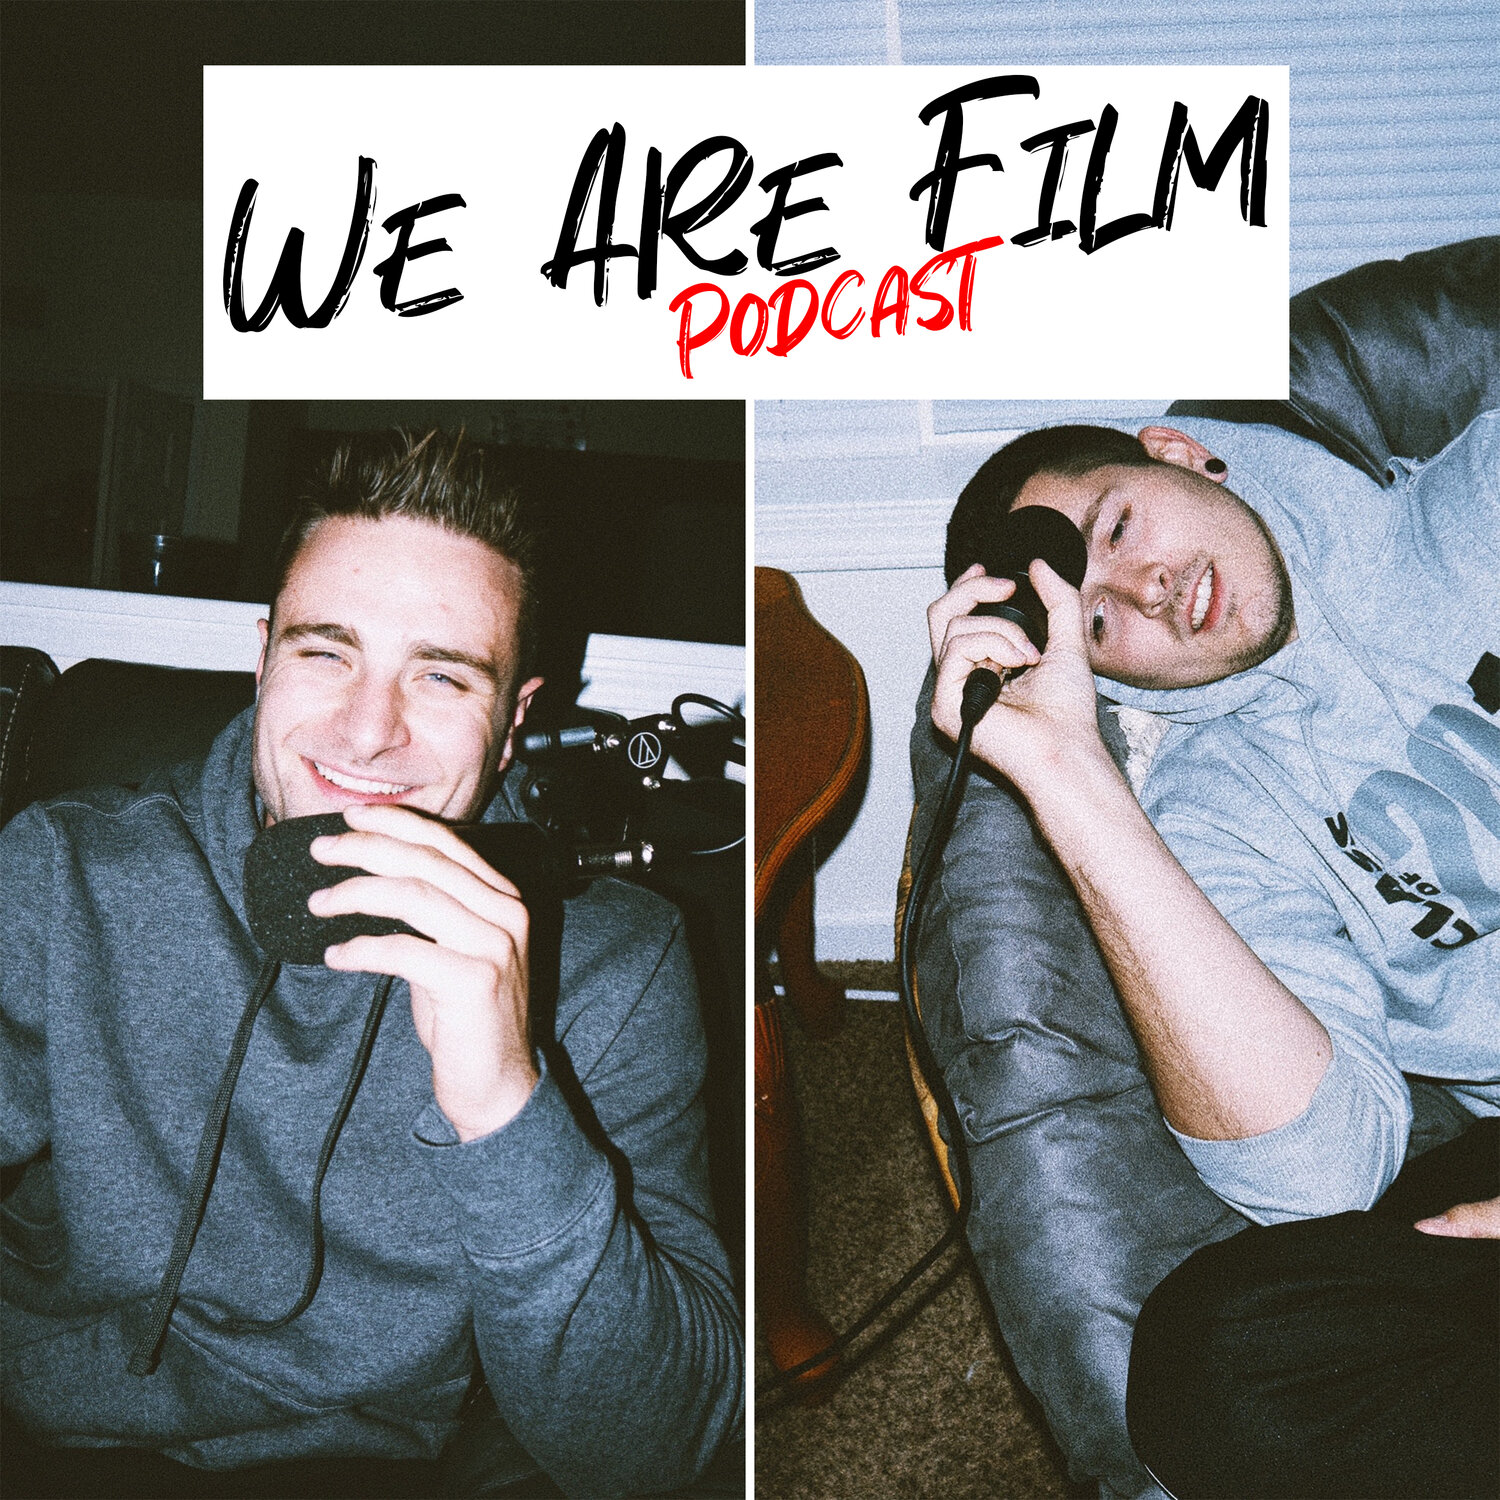 *NEW SHORT FILM ALERT* | We Need Your Help on KickStarter & Making a Short Film | We Are Film Podcast Episode #14